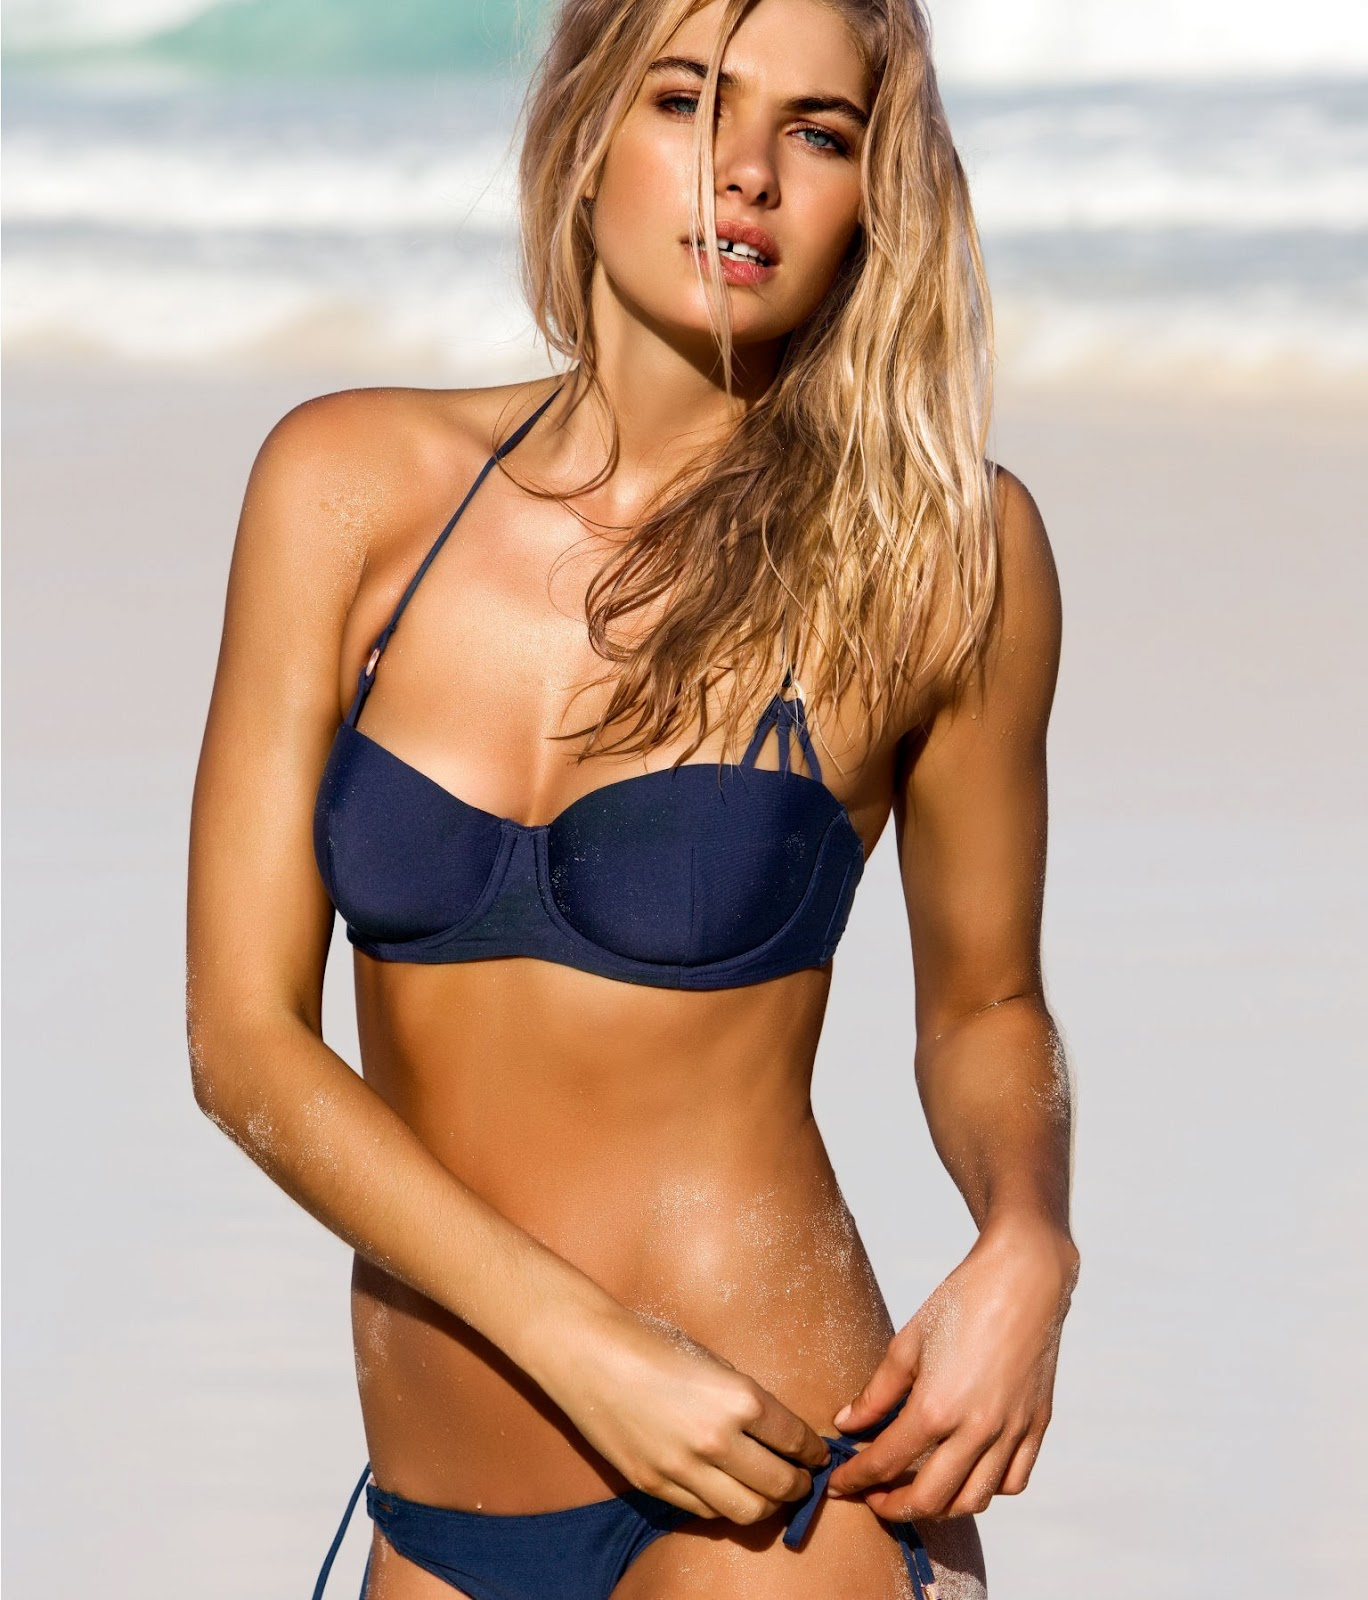 Video Jessica hart bikini pictures that